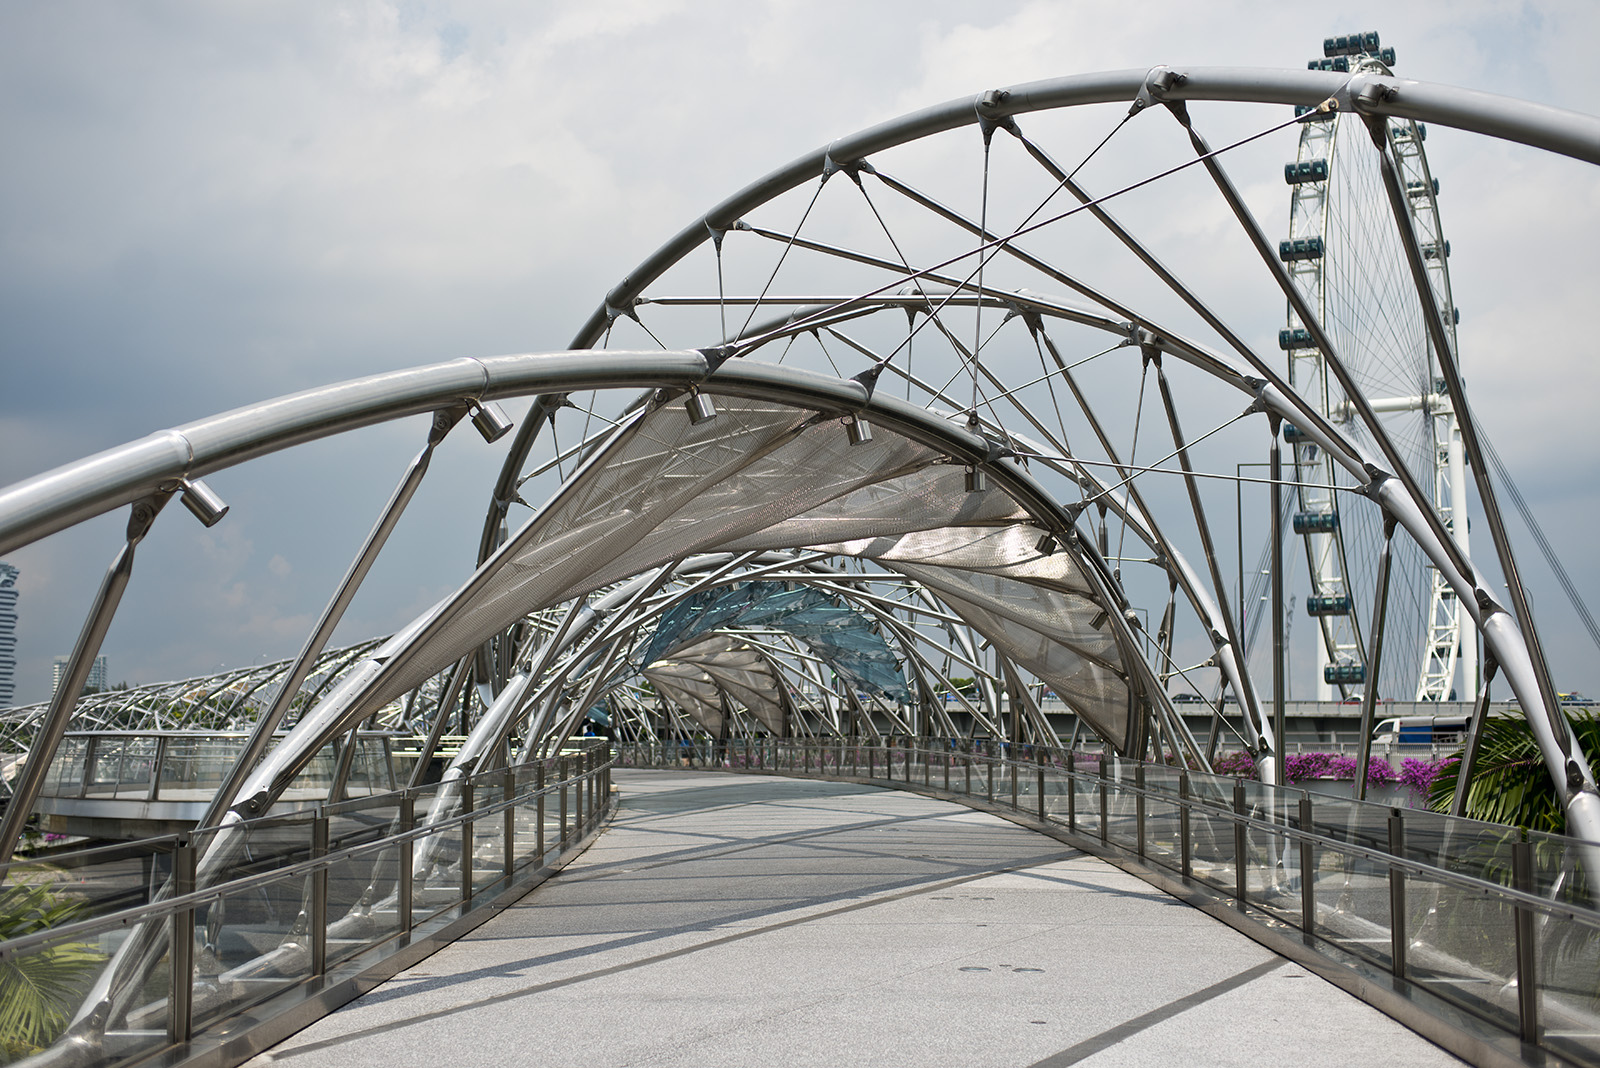 Helix Bridge | ©Steve Collis/Flickr